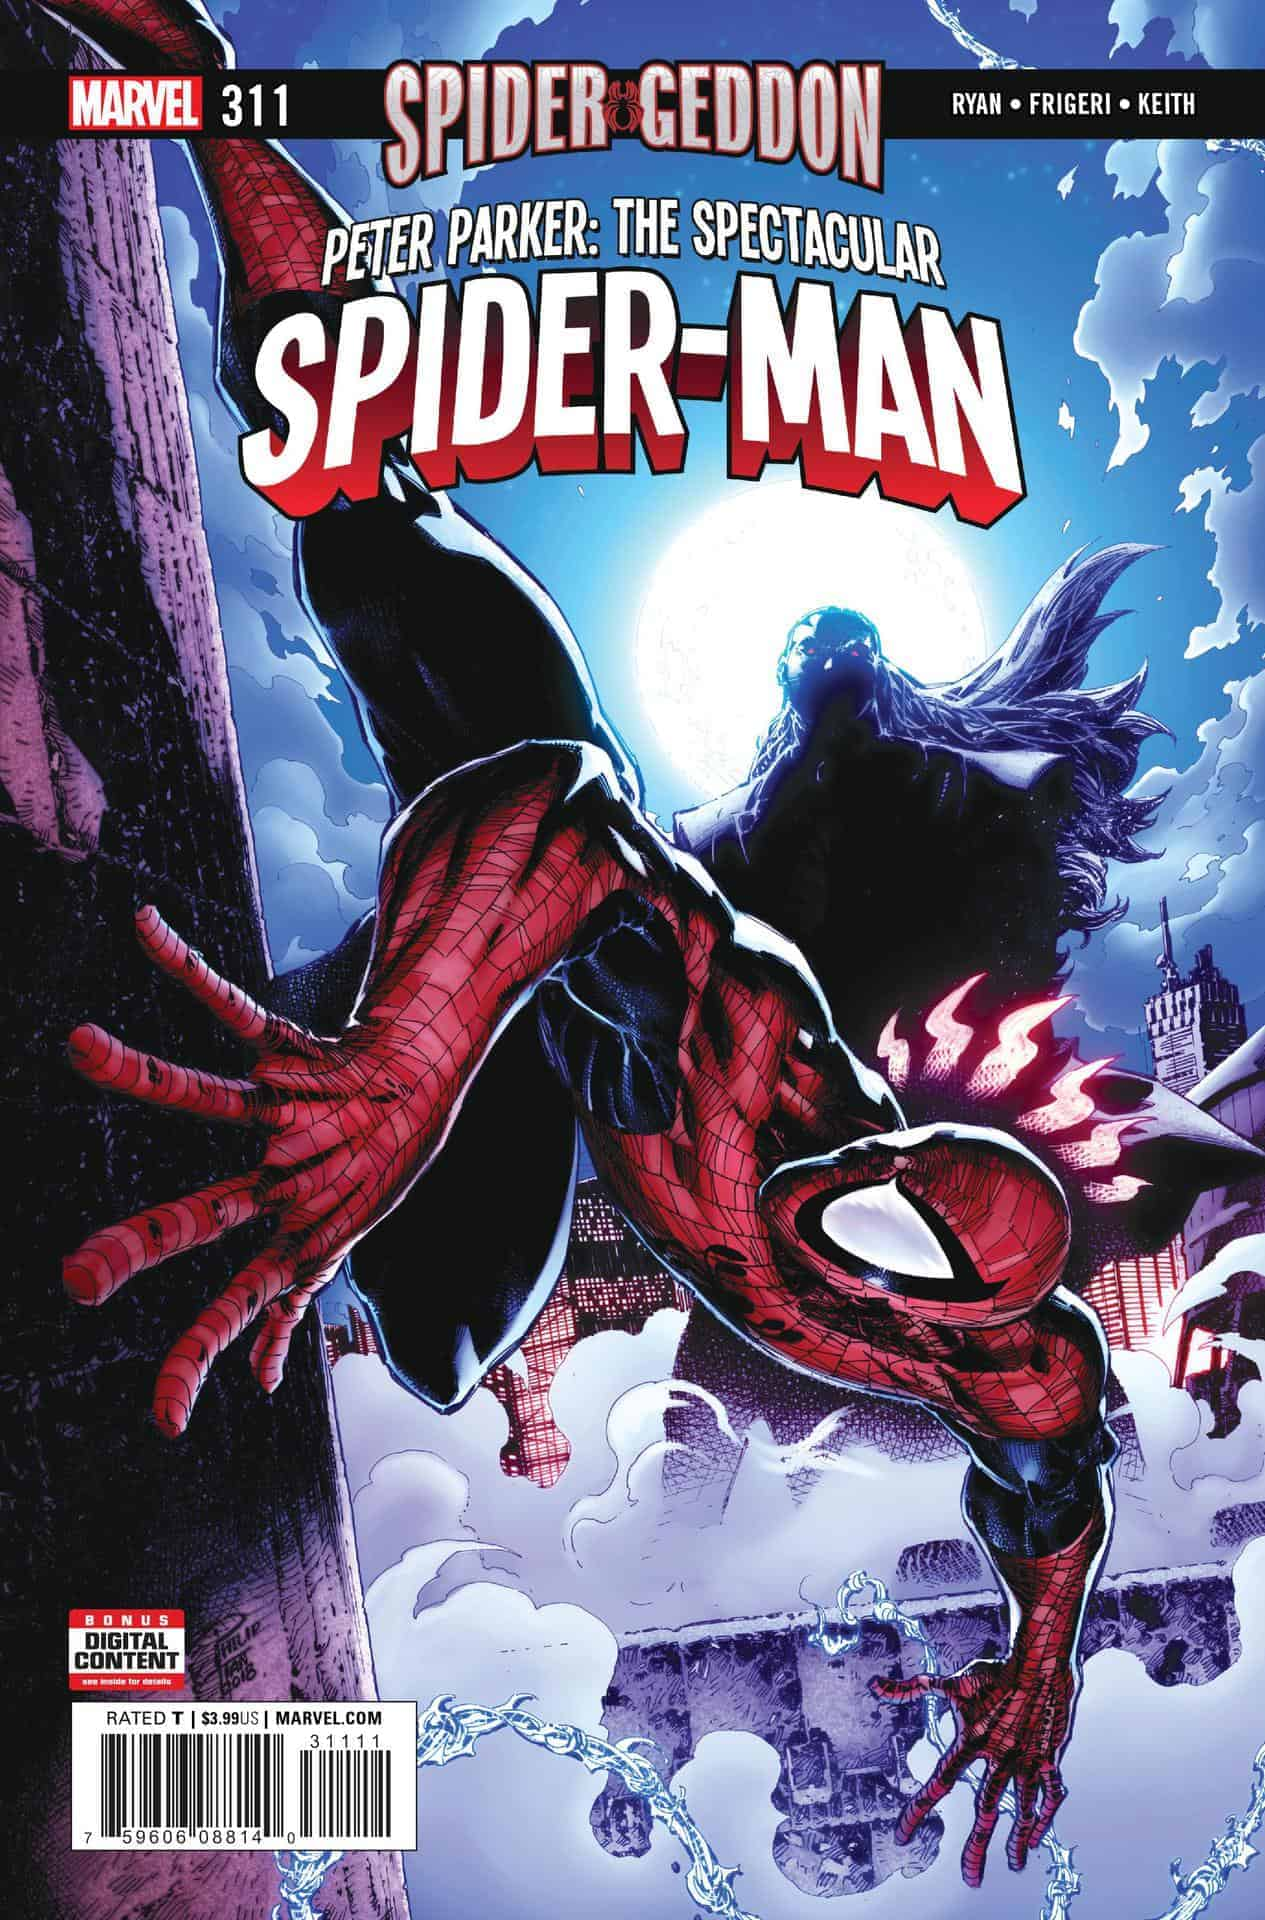 peter parker: the spectacular spiderman #311